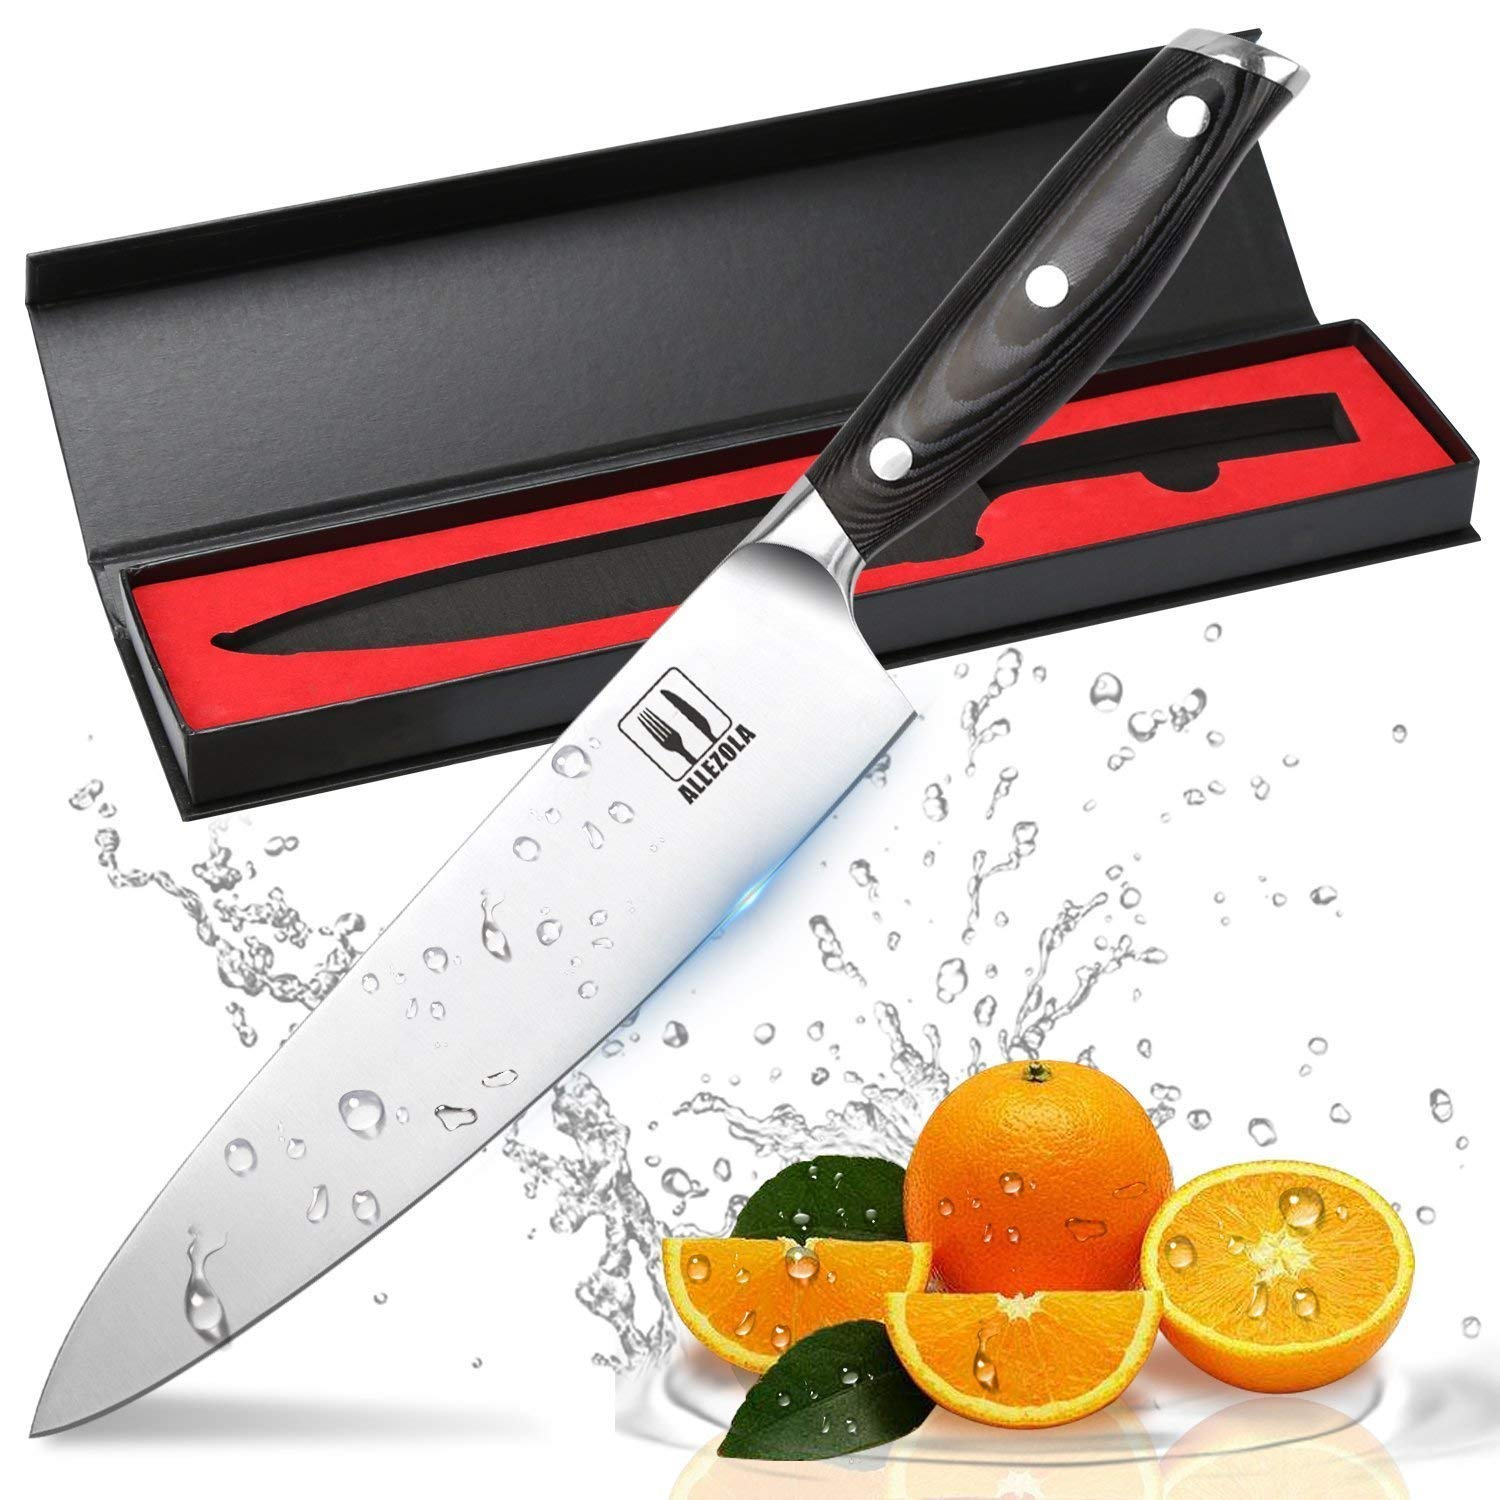 Professional Chef Knife Kitchen Knives 7.5 Inch Grilldom Professional 7.5 Inch German High Carbon Stainless Steel with Ergonomic Handle, Cooking knife ...